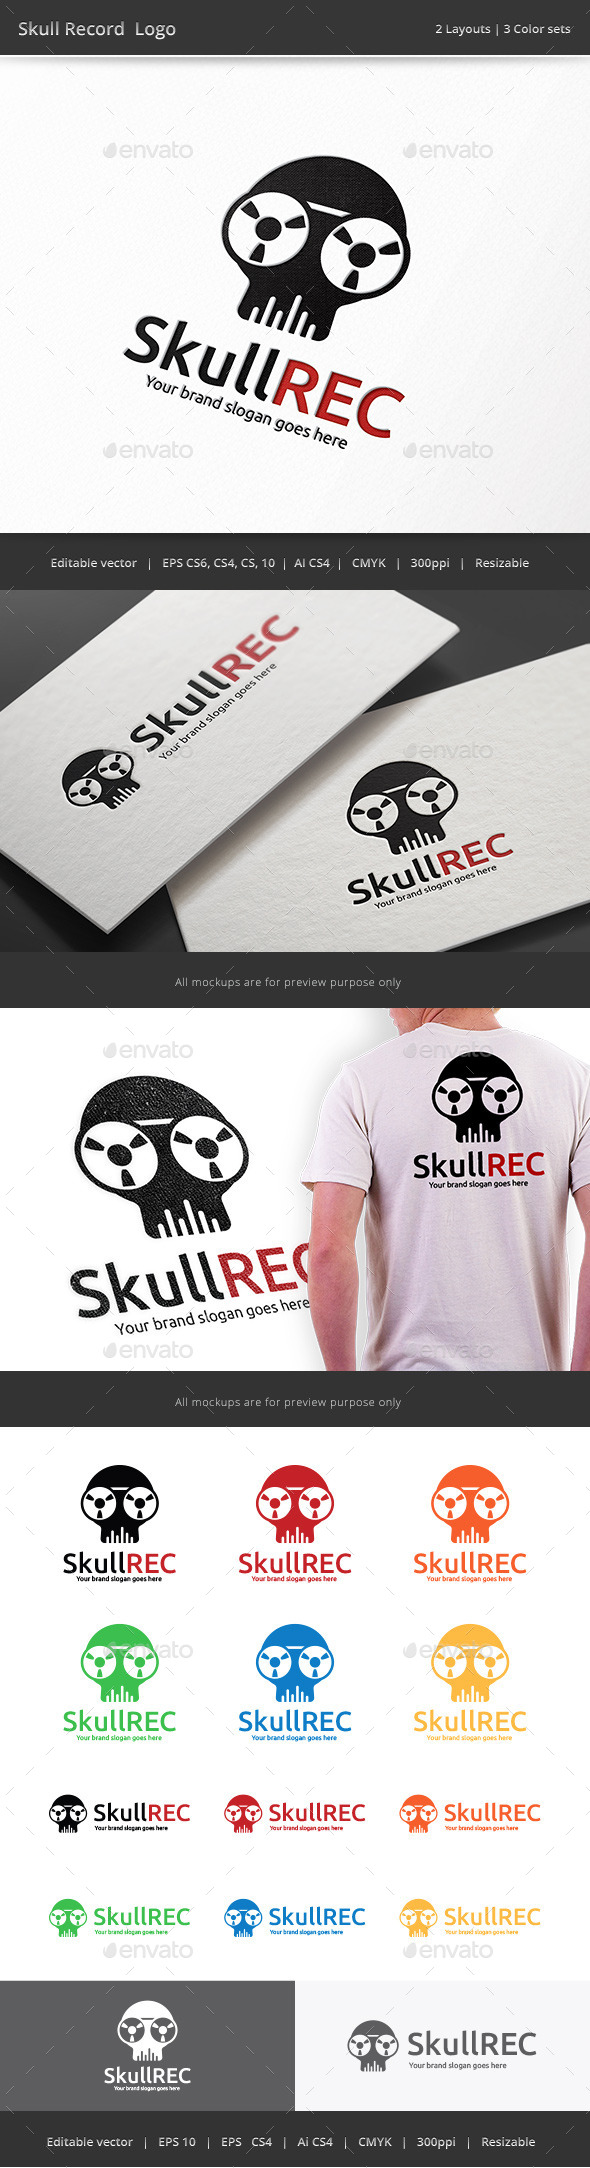 GraphicRiver Skull Record Logo 9775210